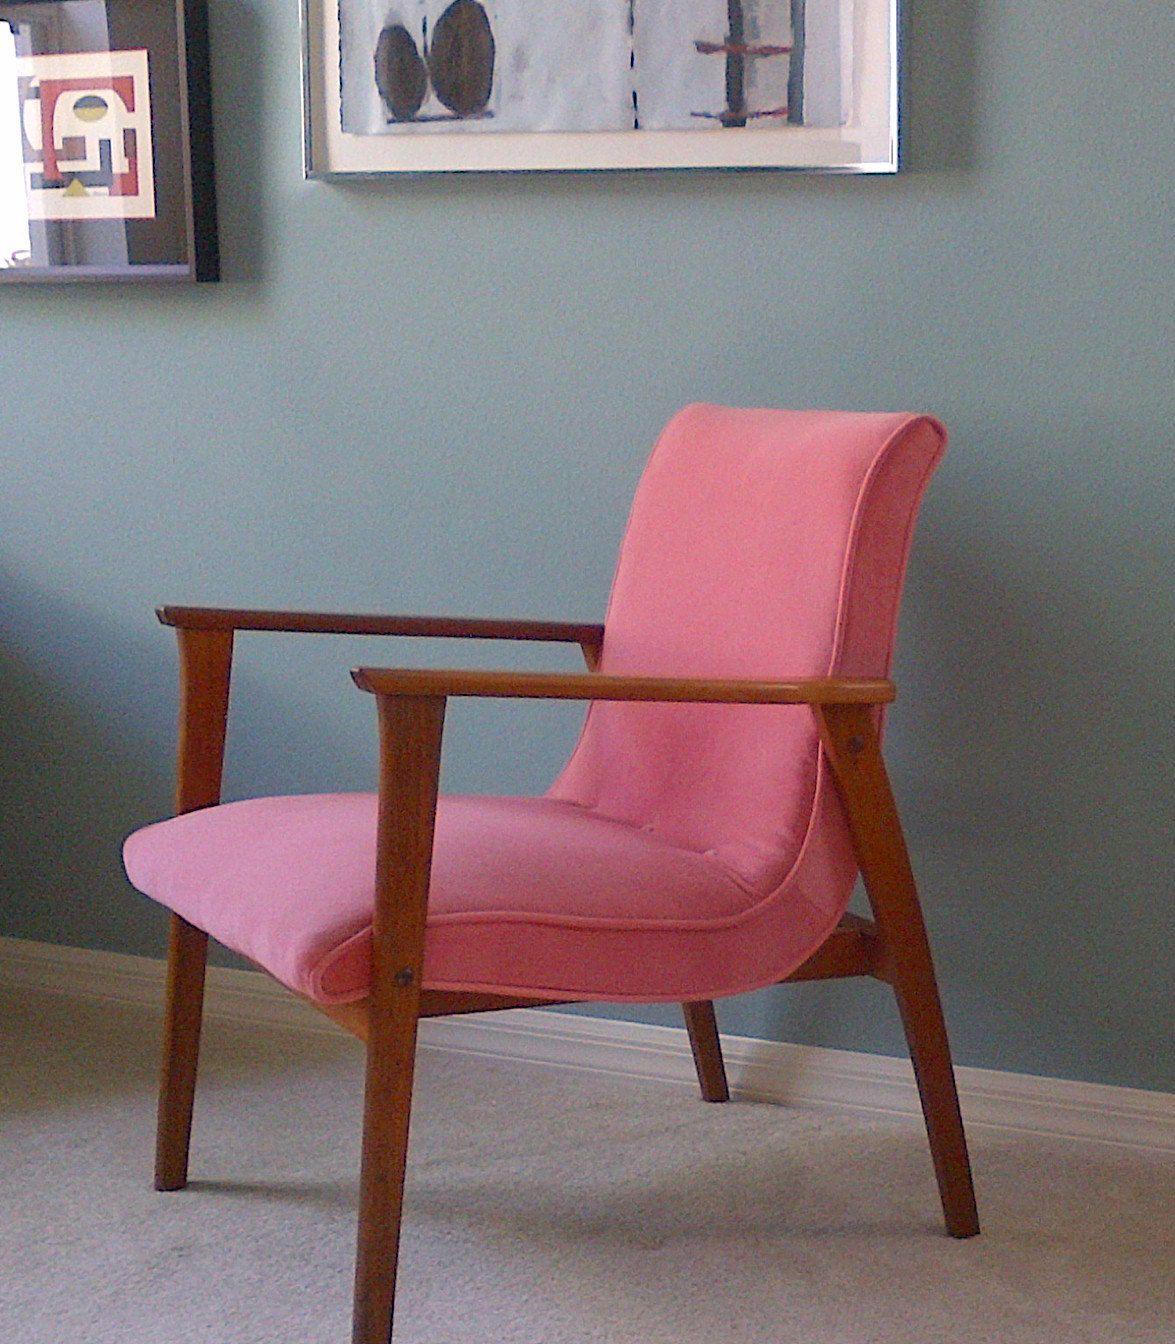 Superb Free Shipping Mid Century Danish Modern Chair In Pink Dailytribune Chair Design For Home Dailytribuneorg